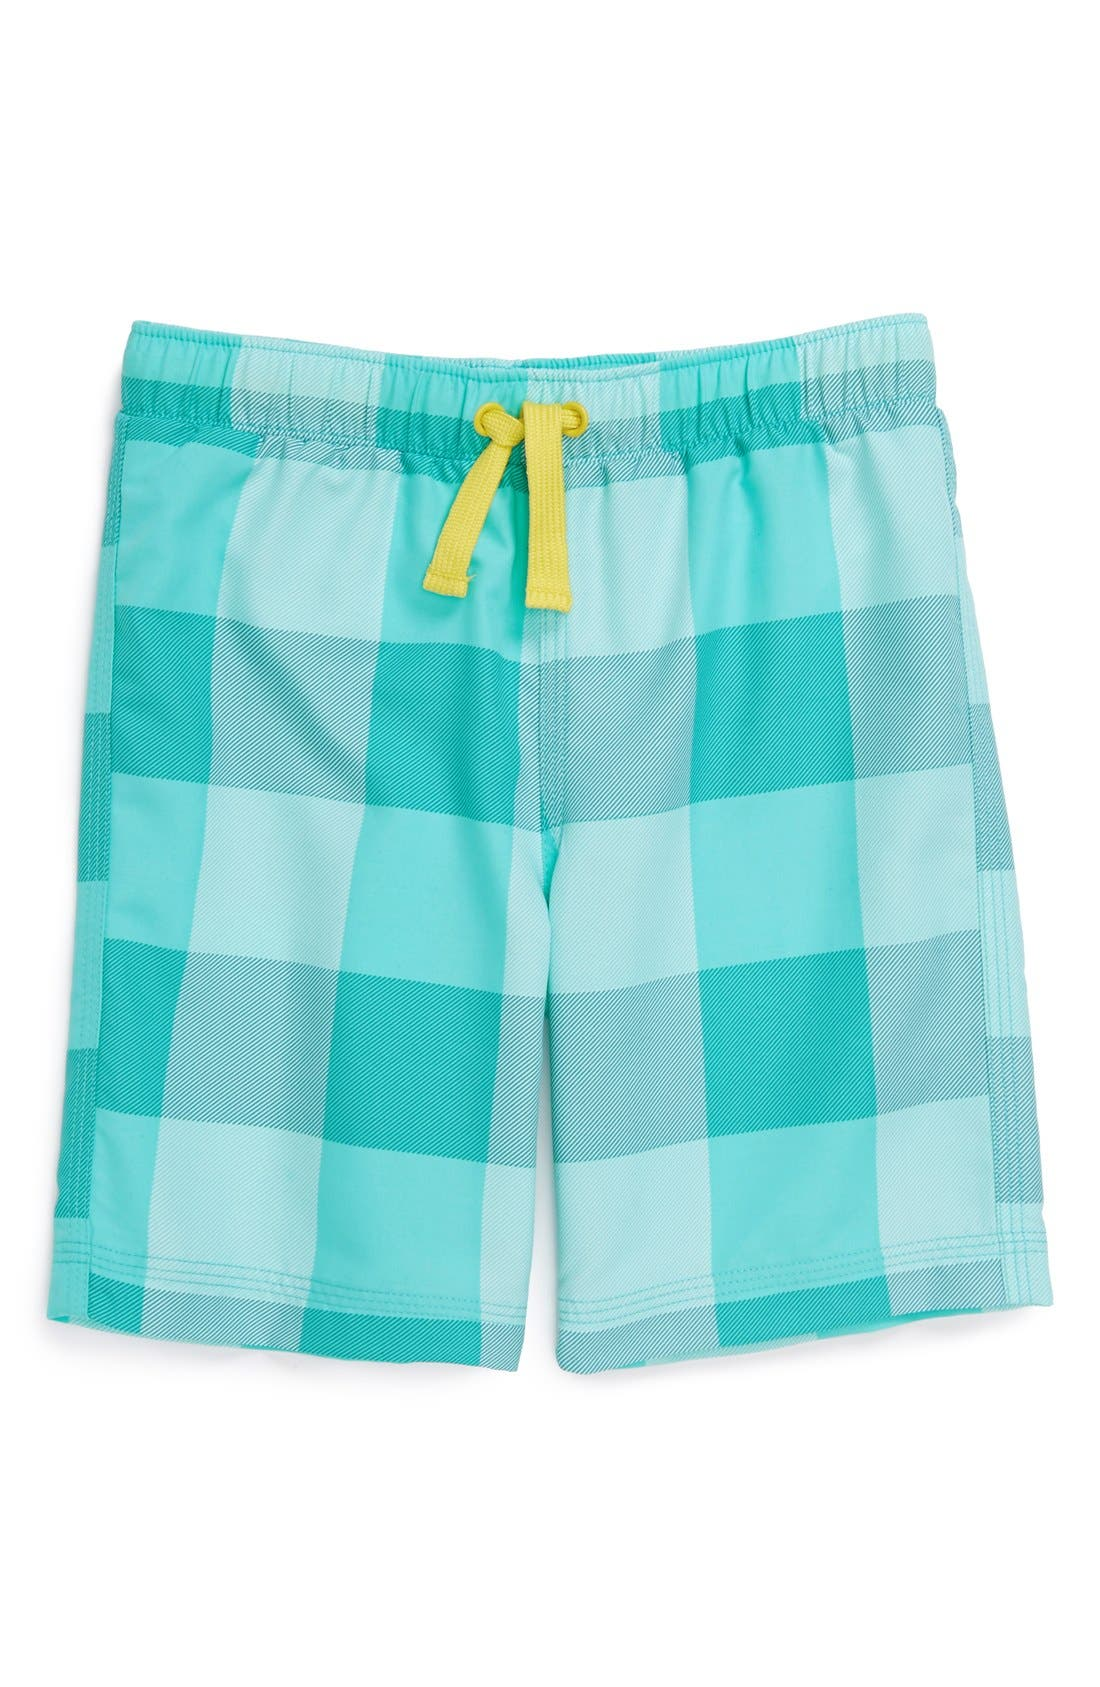 Main Image - Tucker + Tate 'Sand 'N My Trunks' Swim Trunks (Toddler Boys & Little Boys)